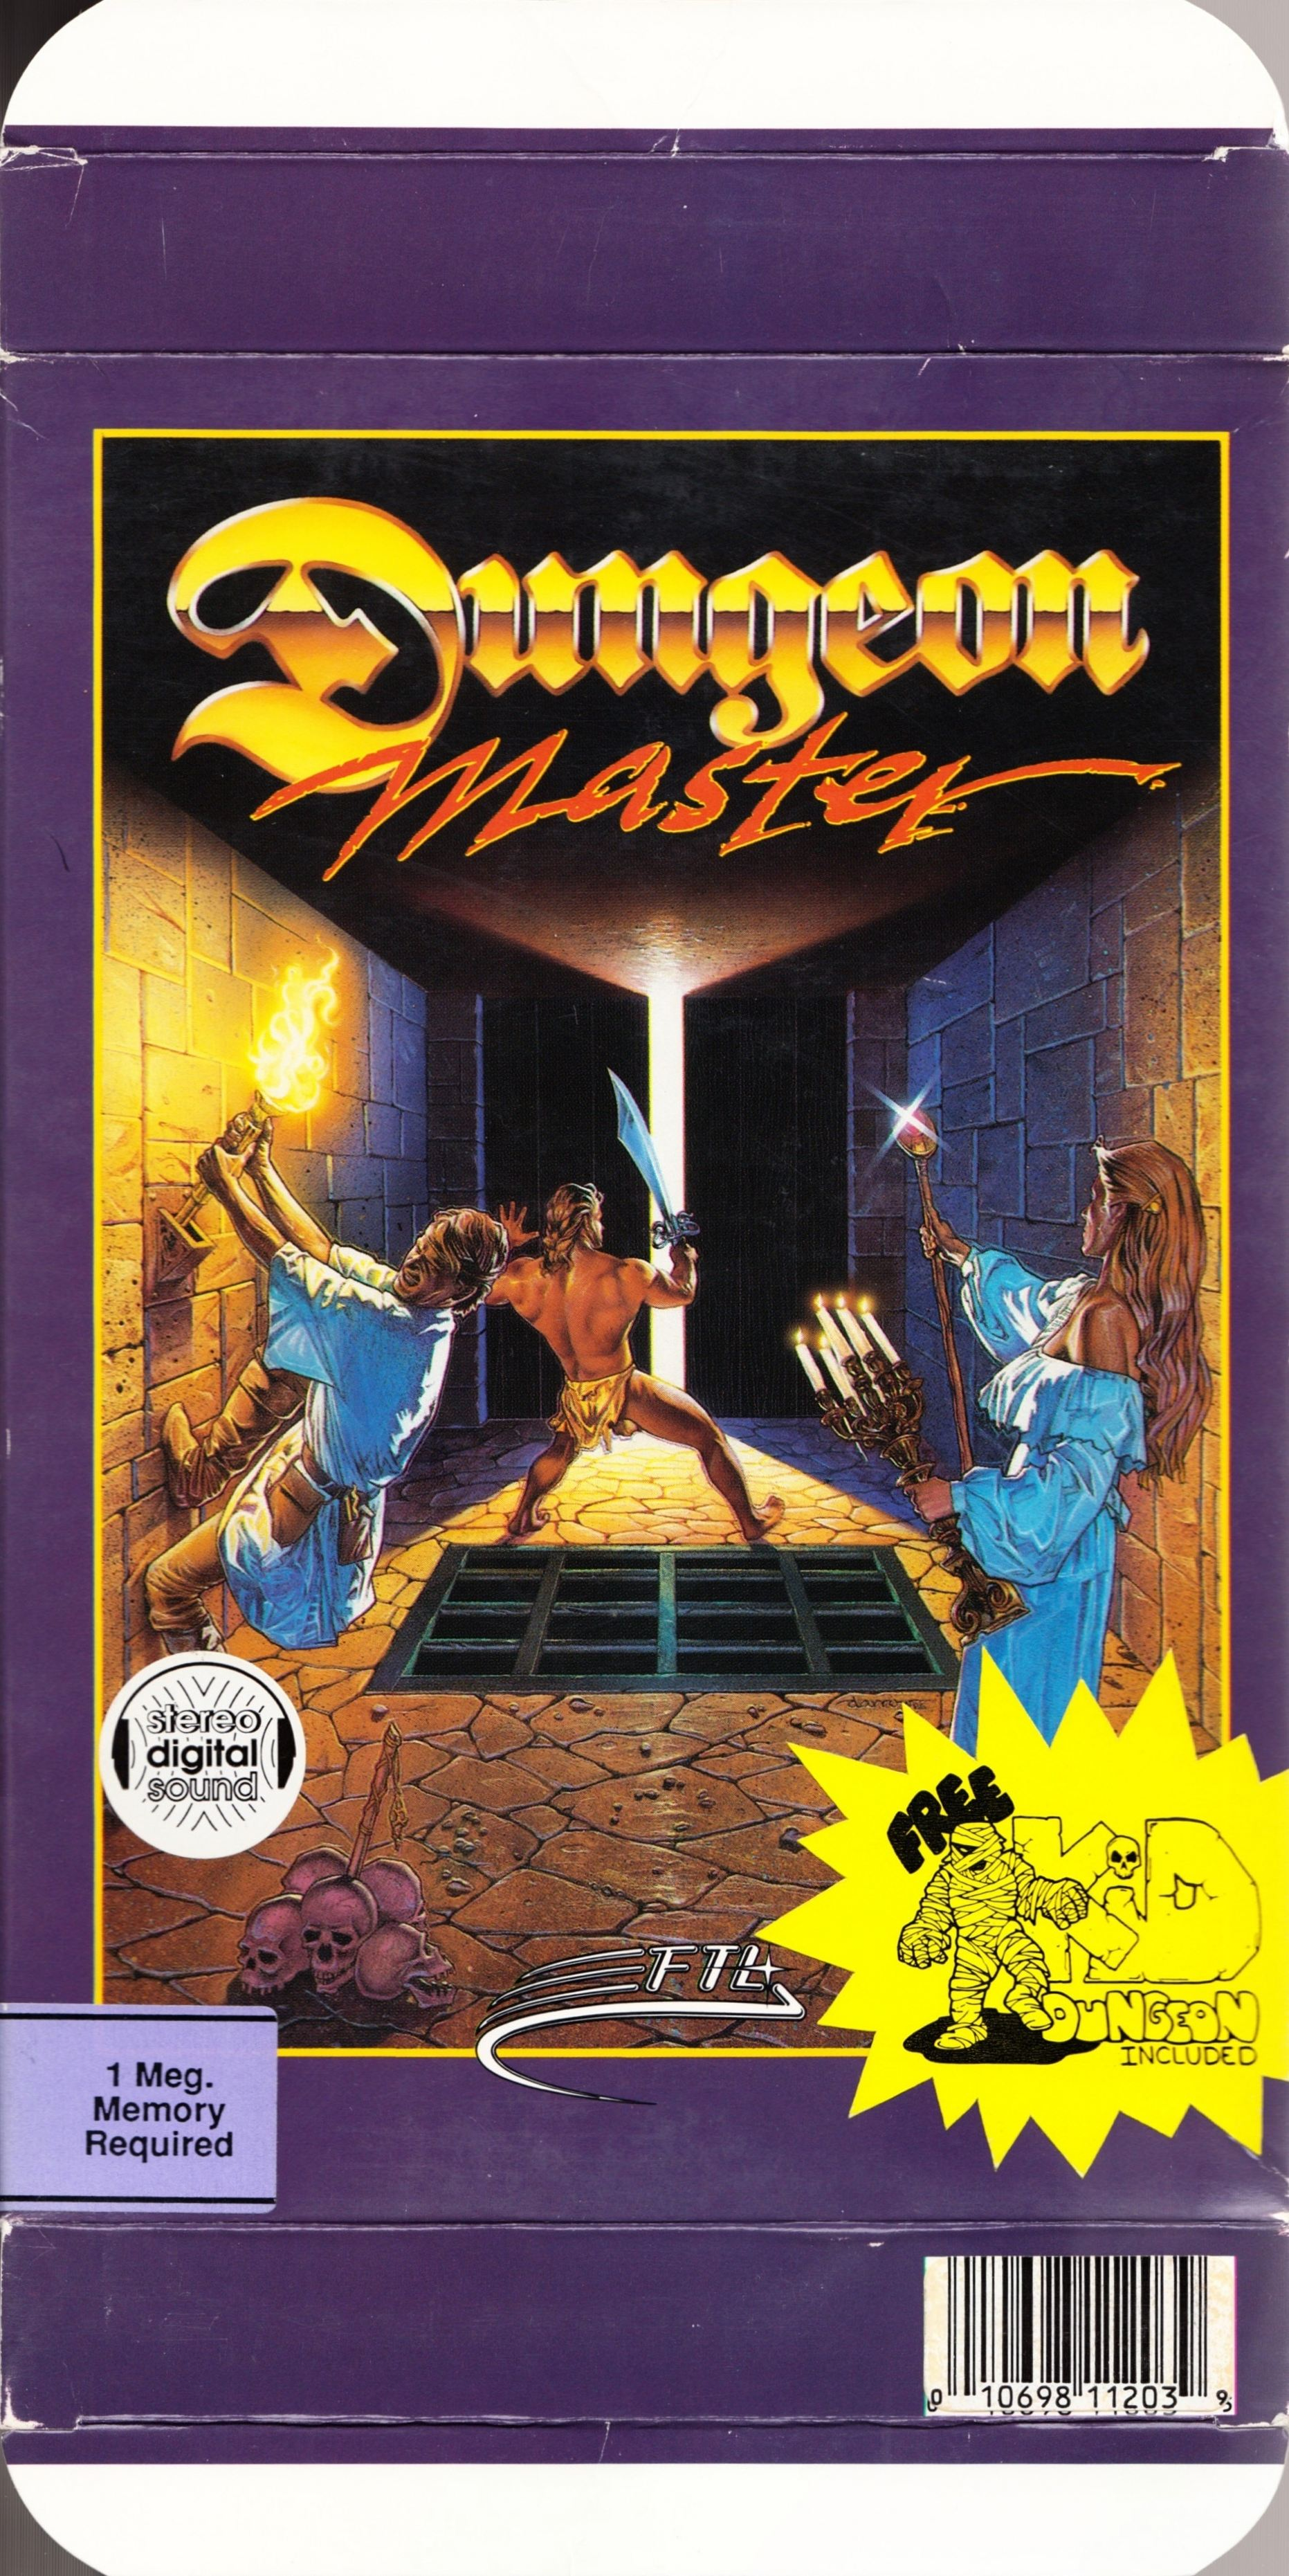 Game - Dungeon Master - US - Apple IIGS - Box - Front - Scan